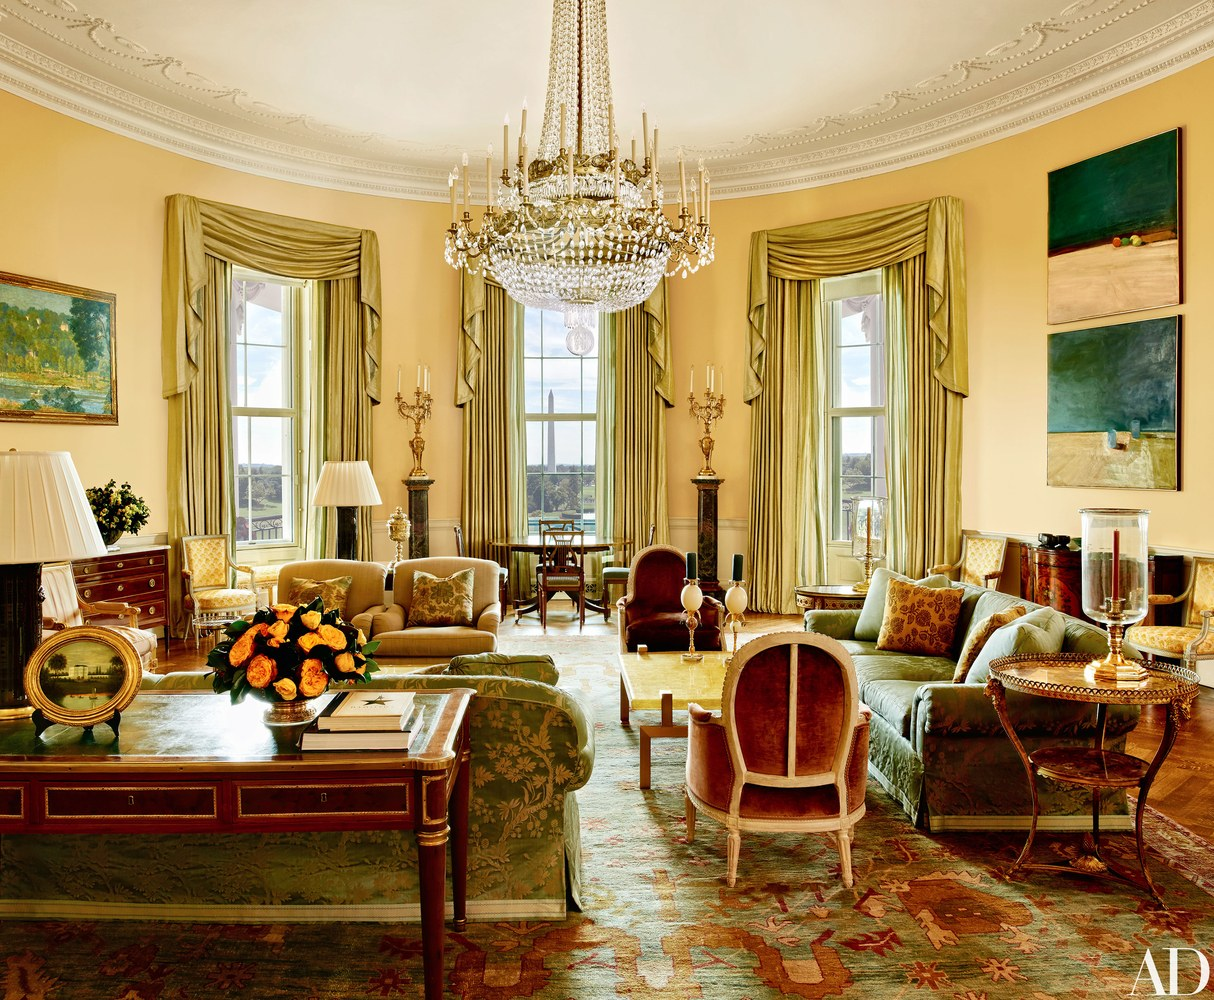 american furniture warehouse living room rugs chairs ethan allen photos: obama reveals private areas of white house ...